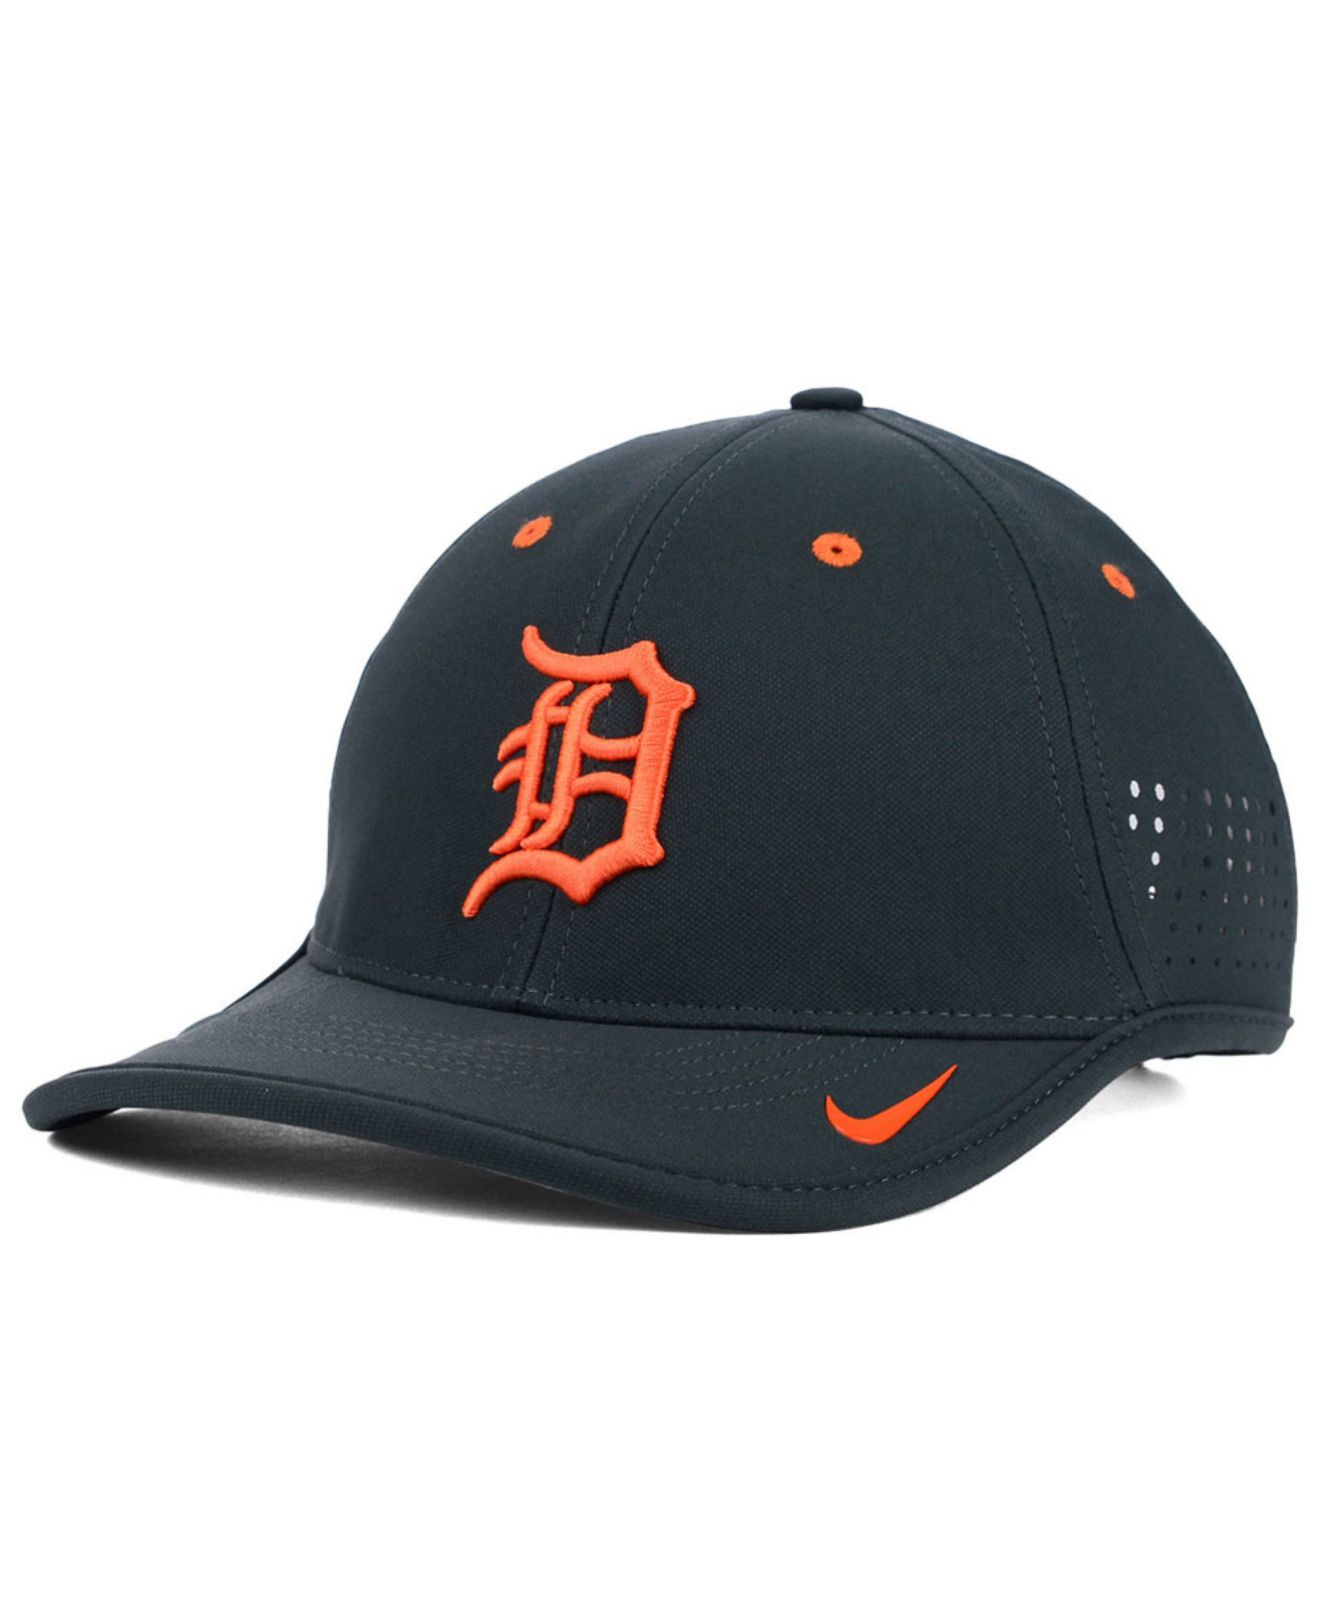 brand new 2c2f4 1e205 ... coupon for reduced lyst nike detroit tigers vapor swoosh adjustable cap  in gray for men 89309